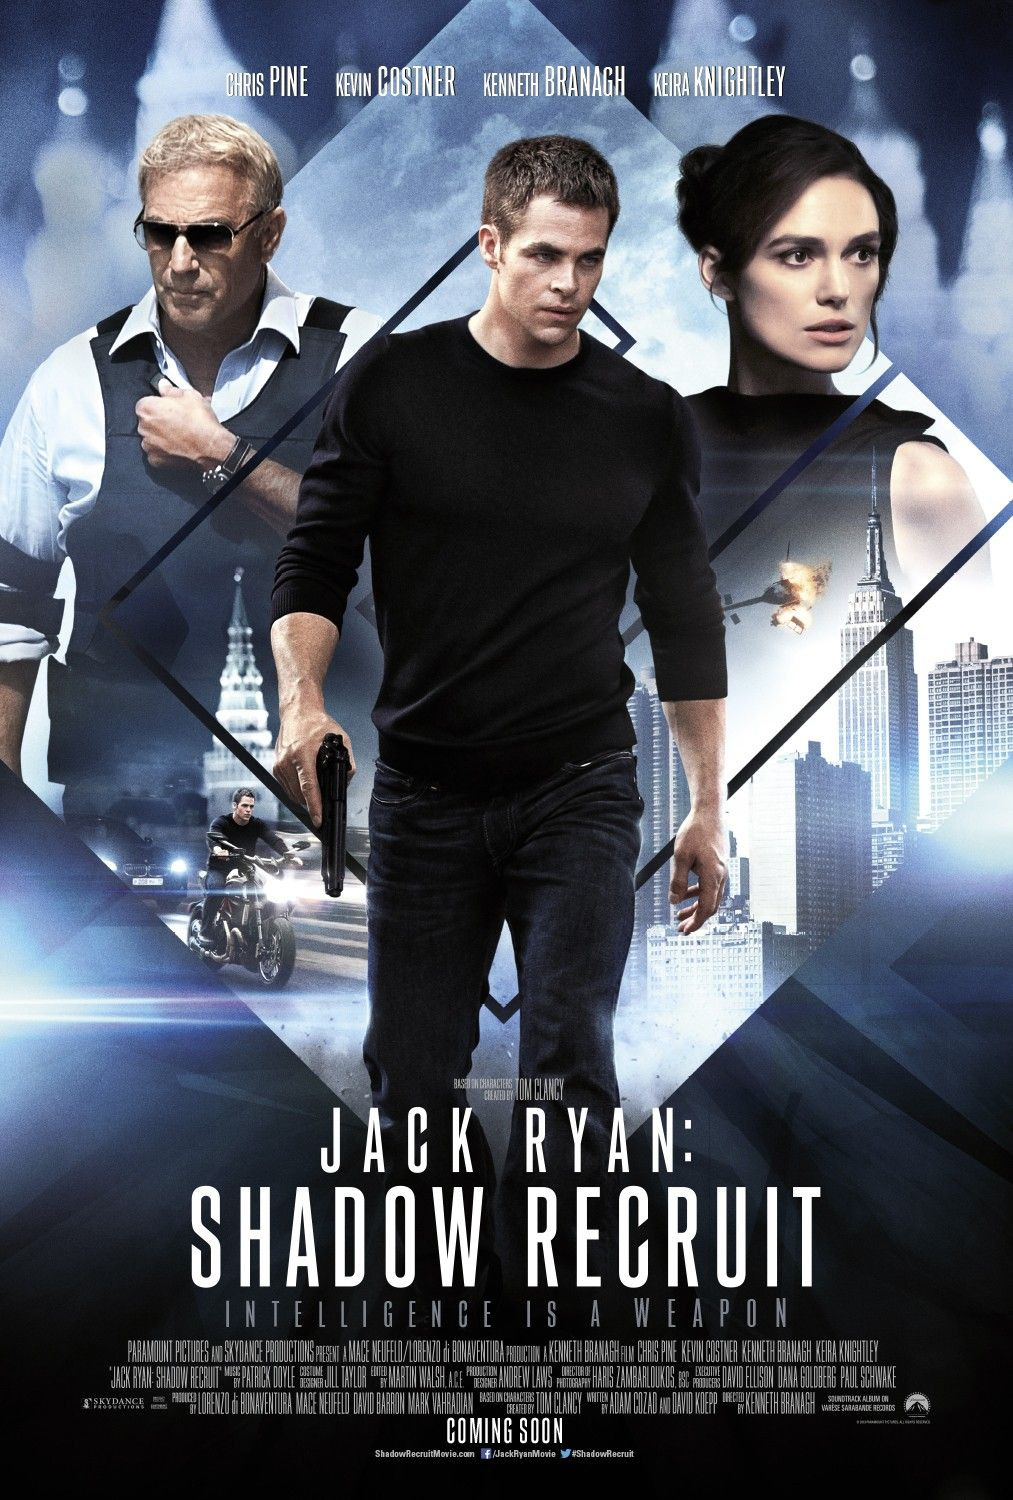 jack-ryan-shadow-recruit theatrical